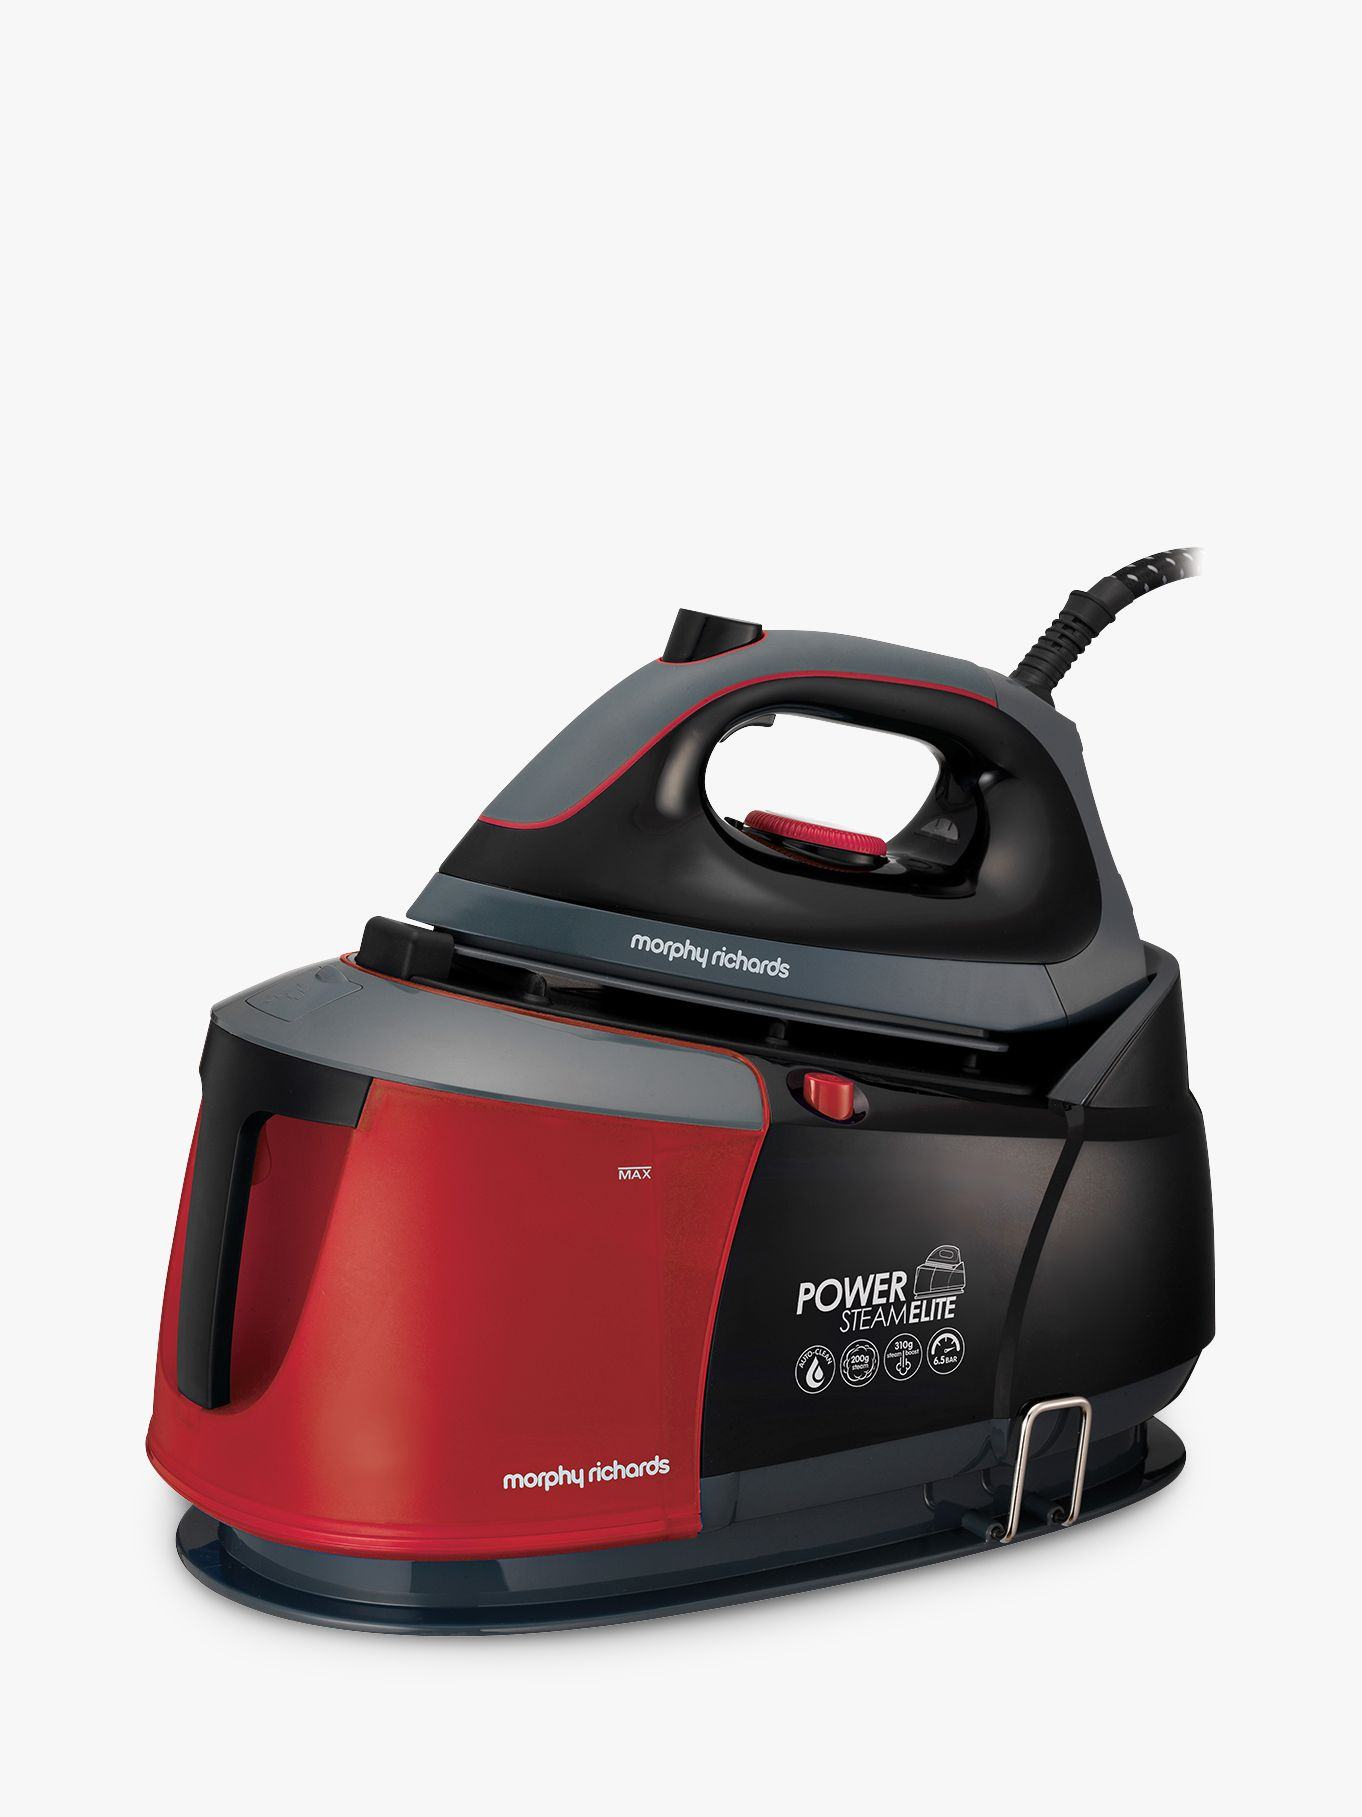 Morphy Richards Morphy Richards Auto-Clean Power Steam Elite Steam Generator Iron, Black/Red